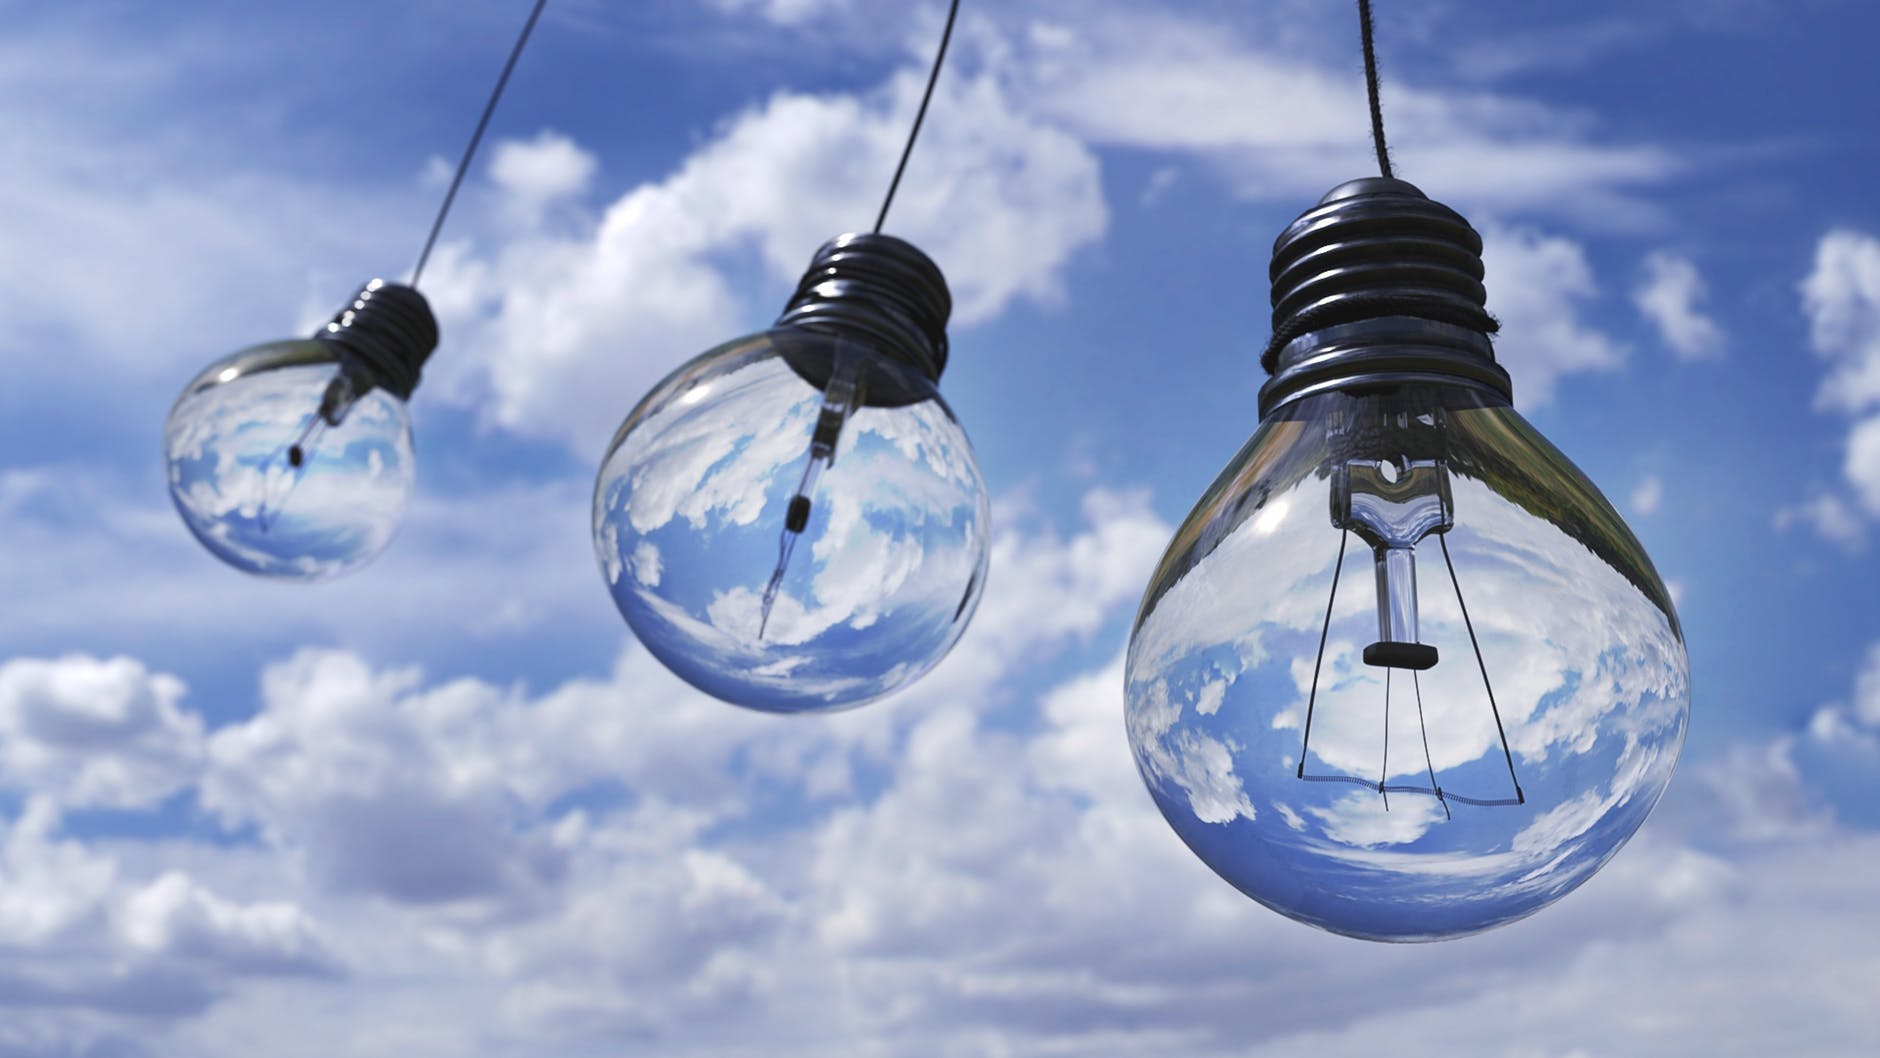 Three light bulbs hanging. We see the sky behind them. Glass is very delicate, and you should learn how to pack fragile items such as this one.